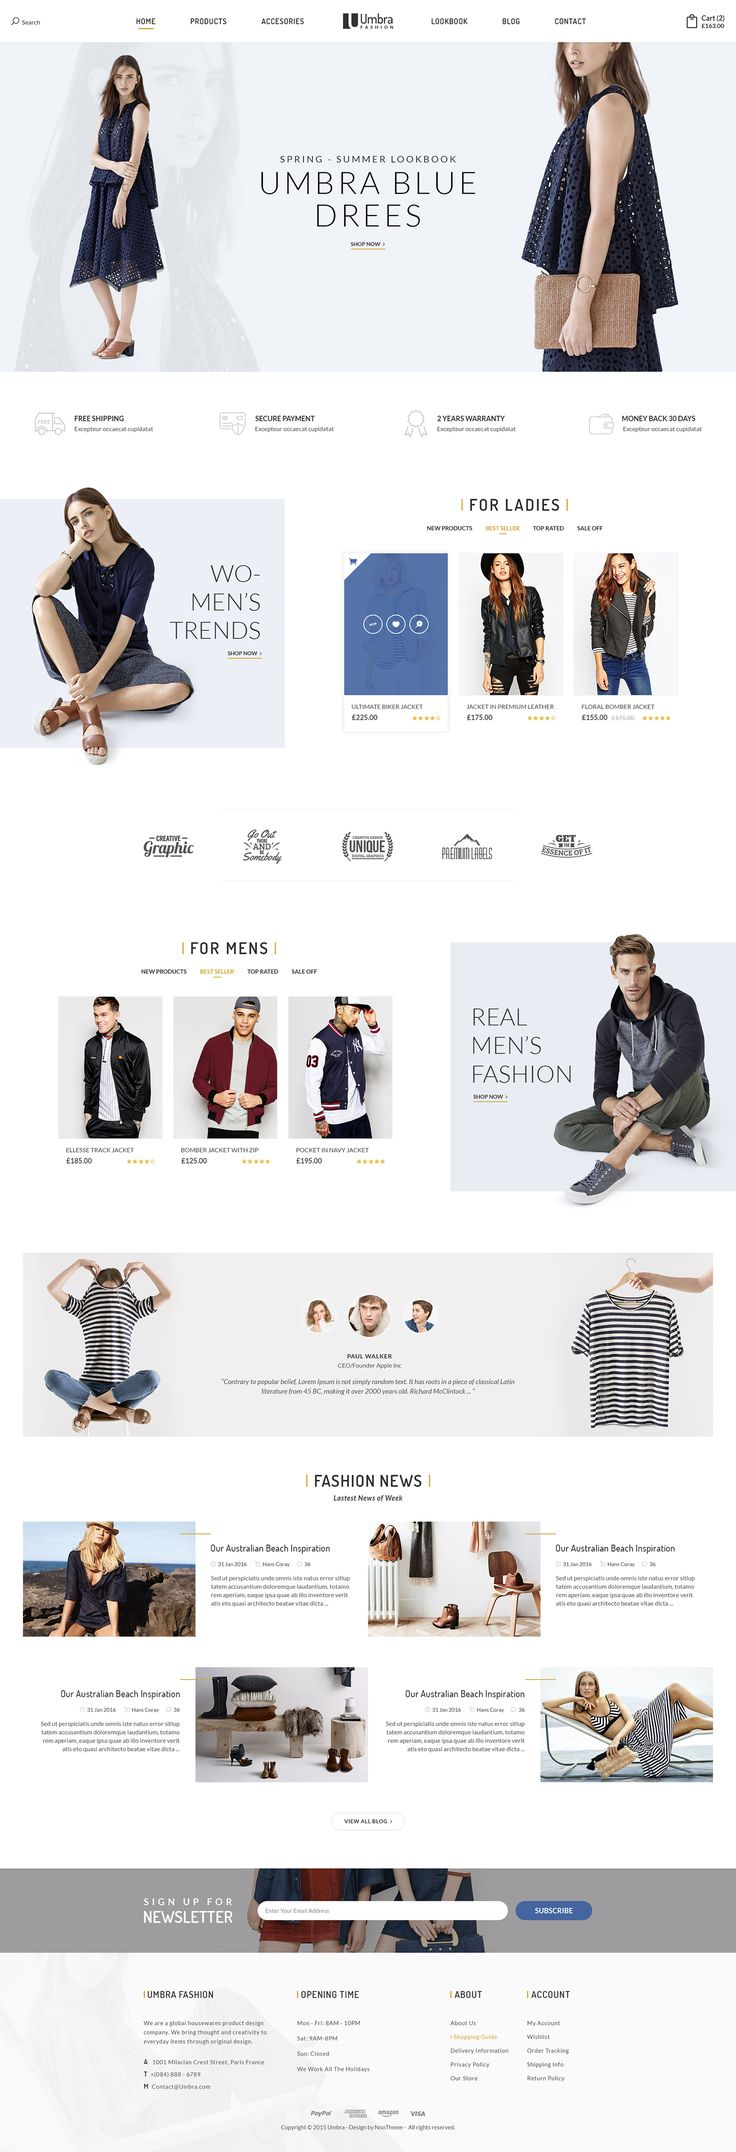 Umbra is the premium PSD template for multi concept eCommerce shop. It can be suitable for any kind of ecommerce shops thanks to its multi-functional layout. Umbra brings in the clean interface with unique and modern style